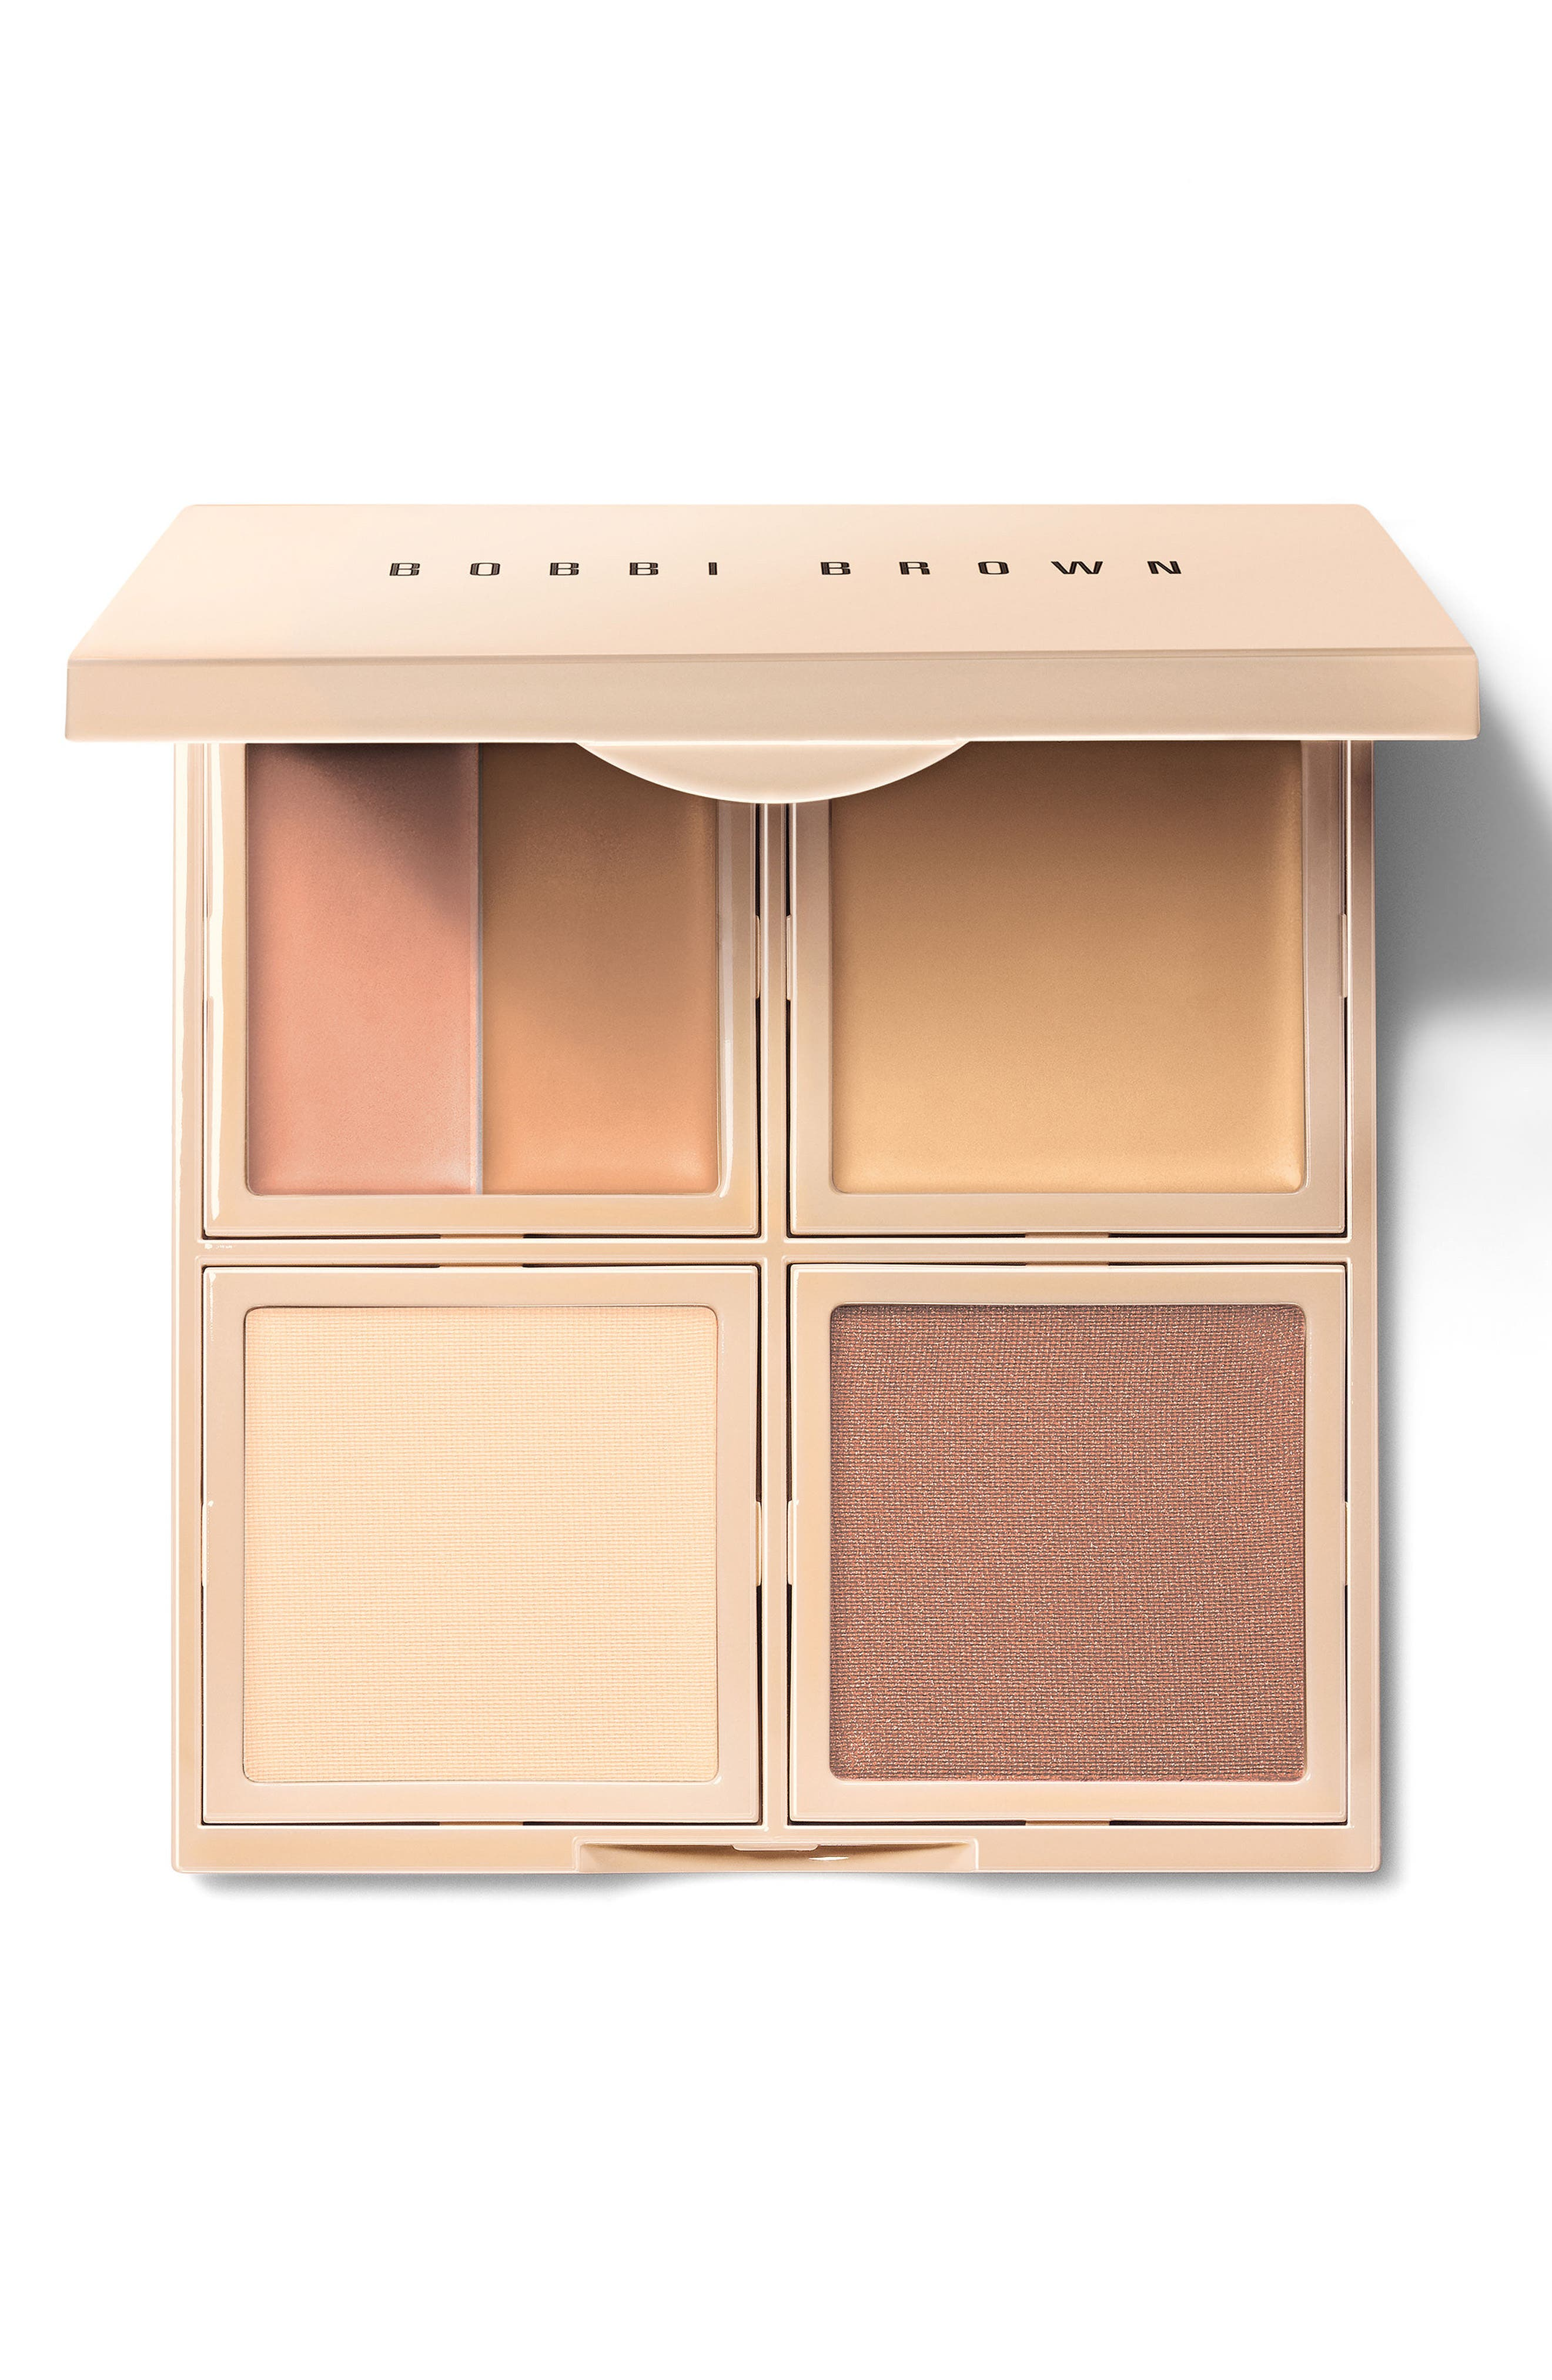 Main Image - Bobbi Brown Essential 5-in-1 Face Palette (Nordstrom Exclusive) ($135 Value)